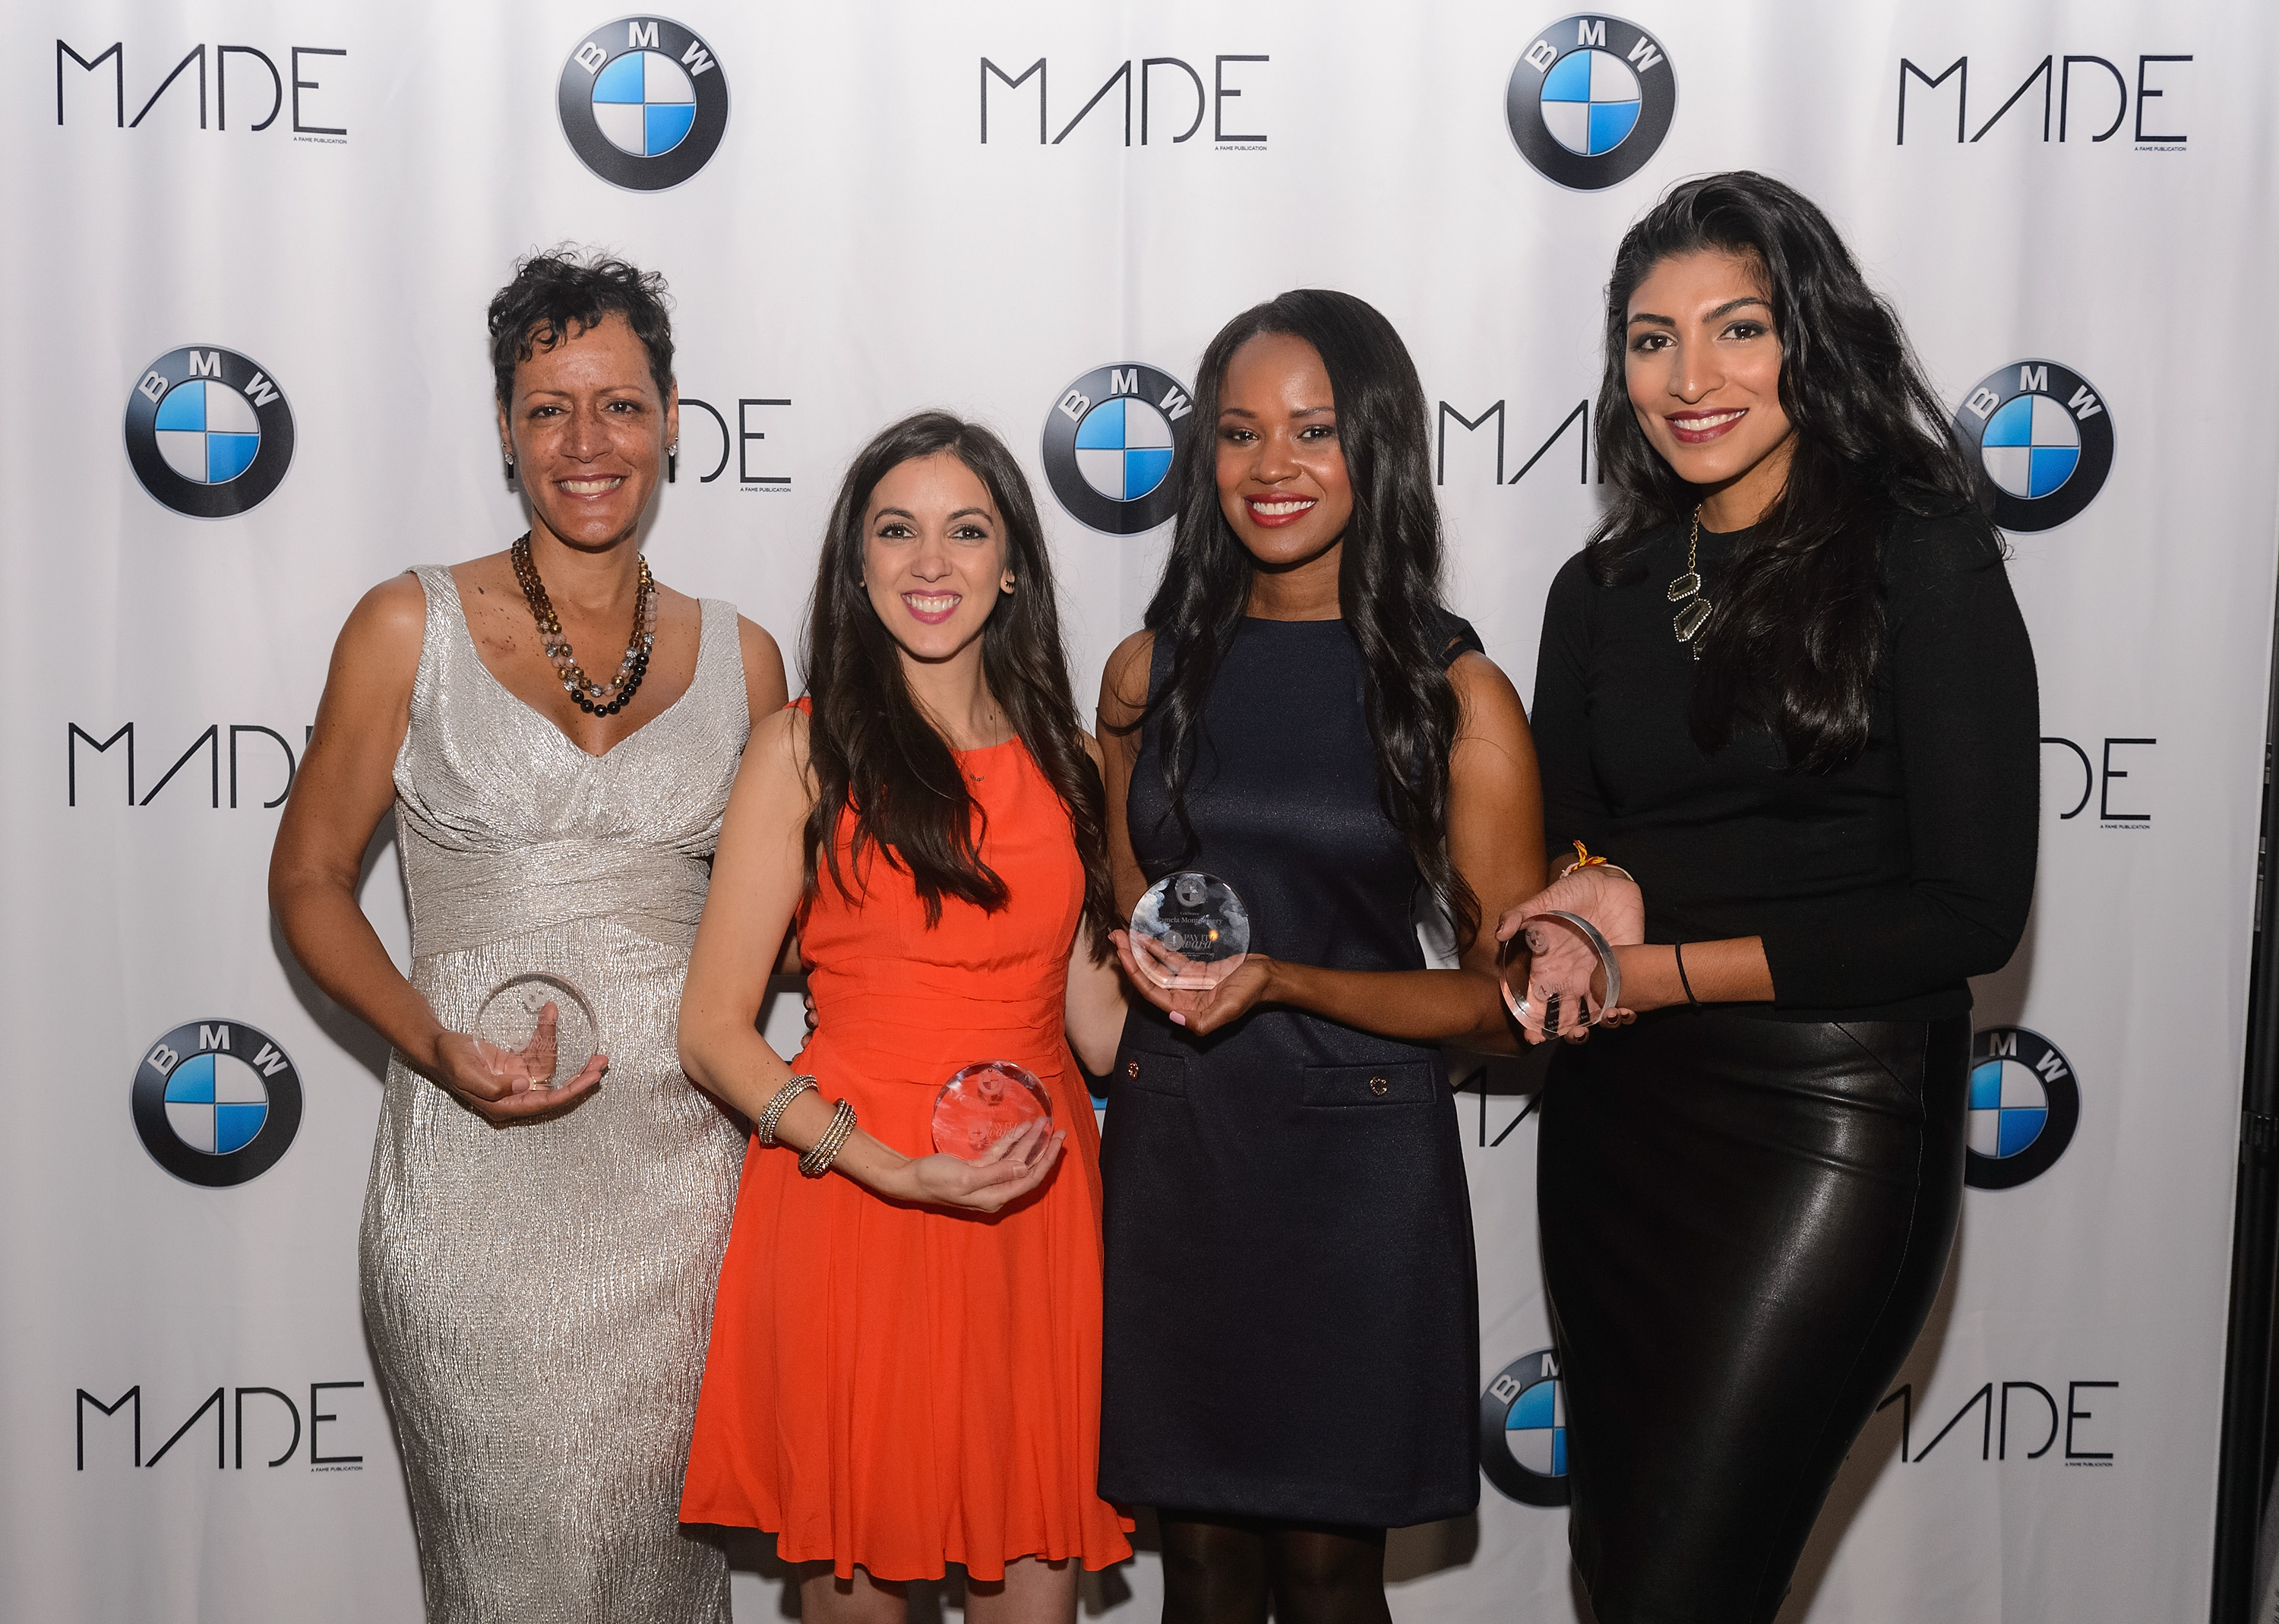 BMW & MADE Celebrate Chicago Women in Philanthropy